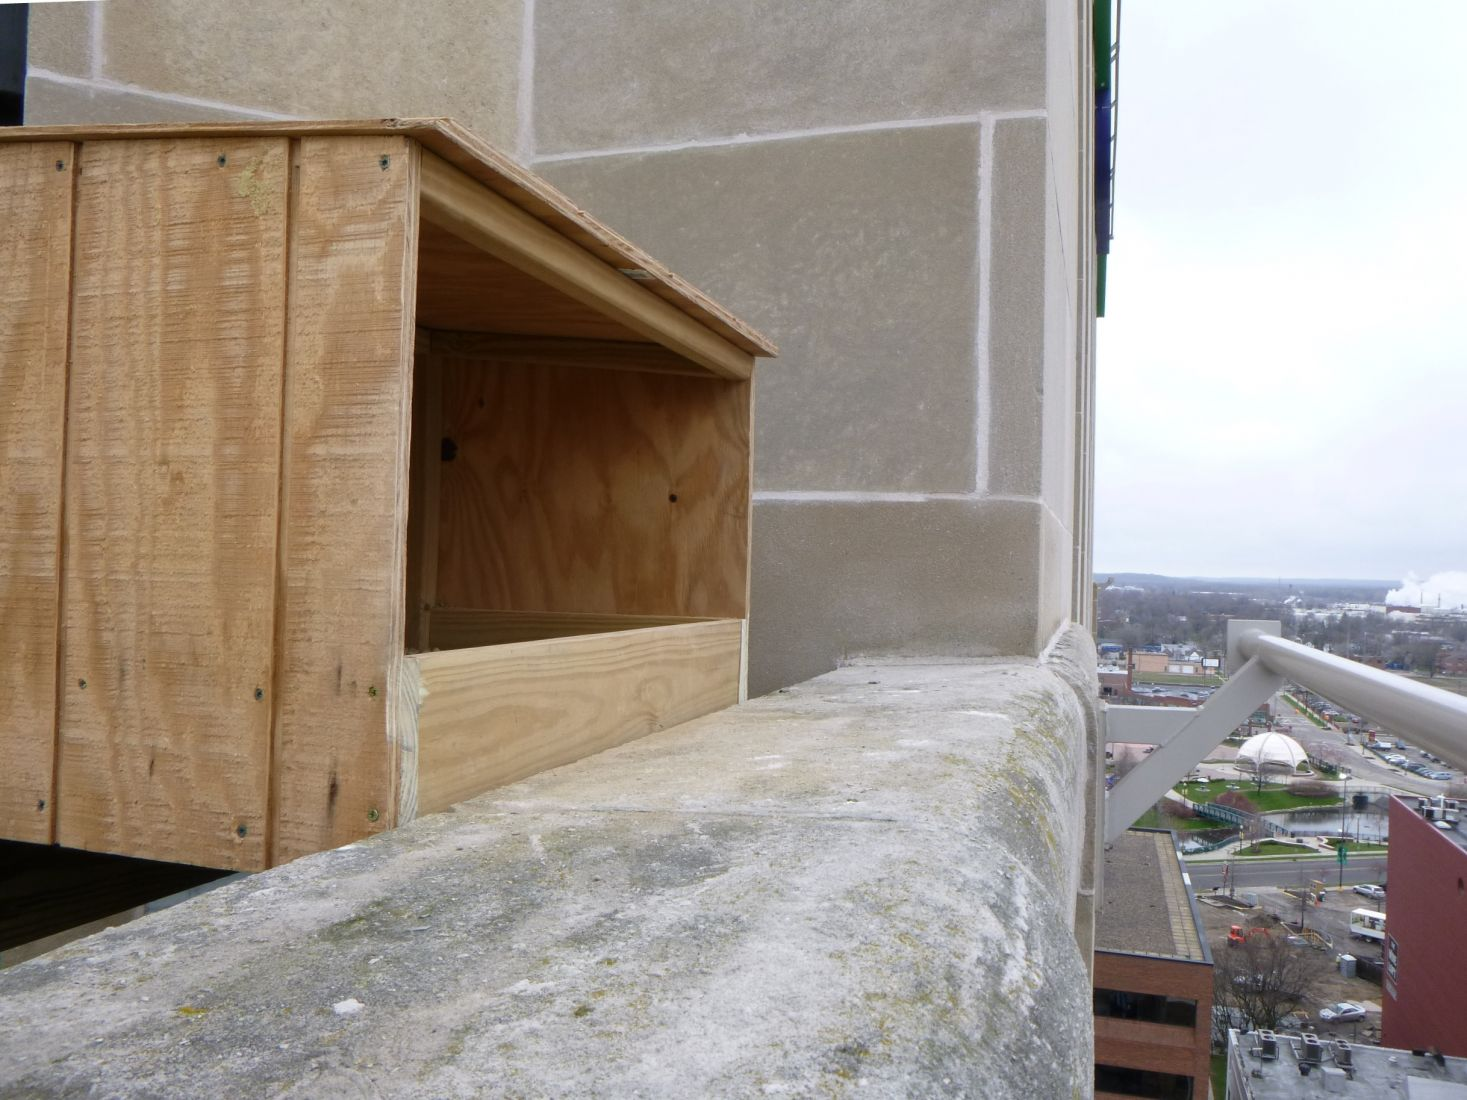 Peregrine Falcon Nest Box Installation